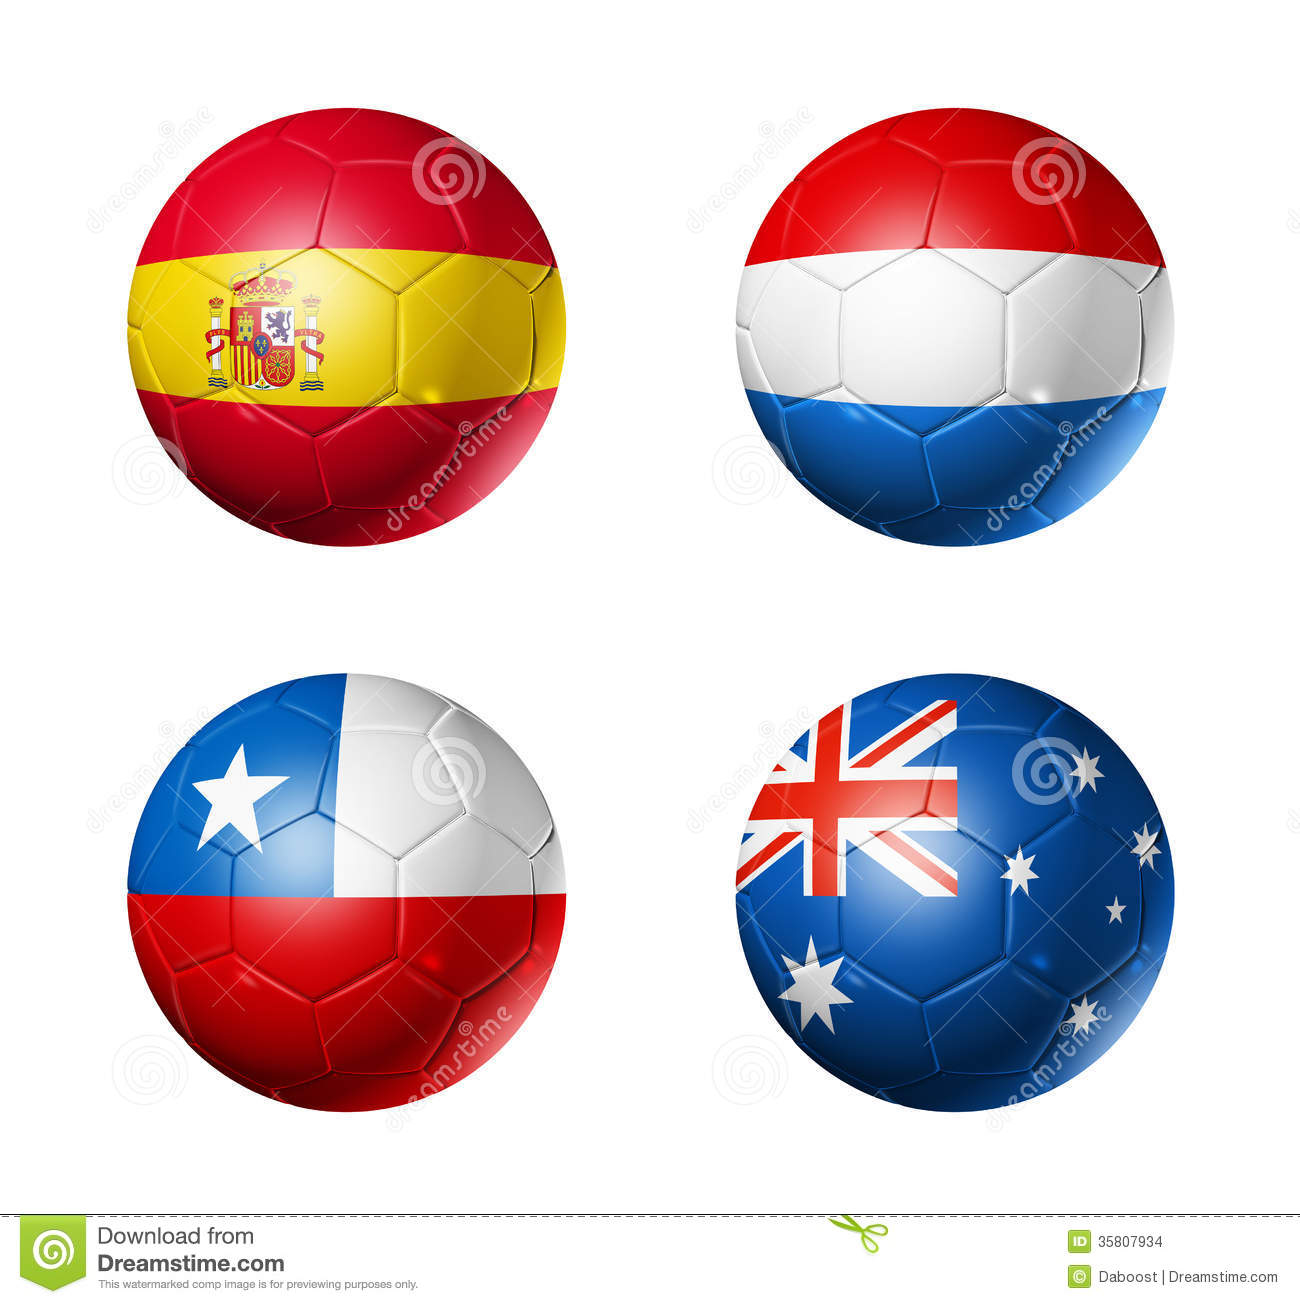 Brazil world cup 2014 group B flags on soccer ball